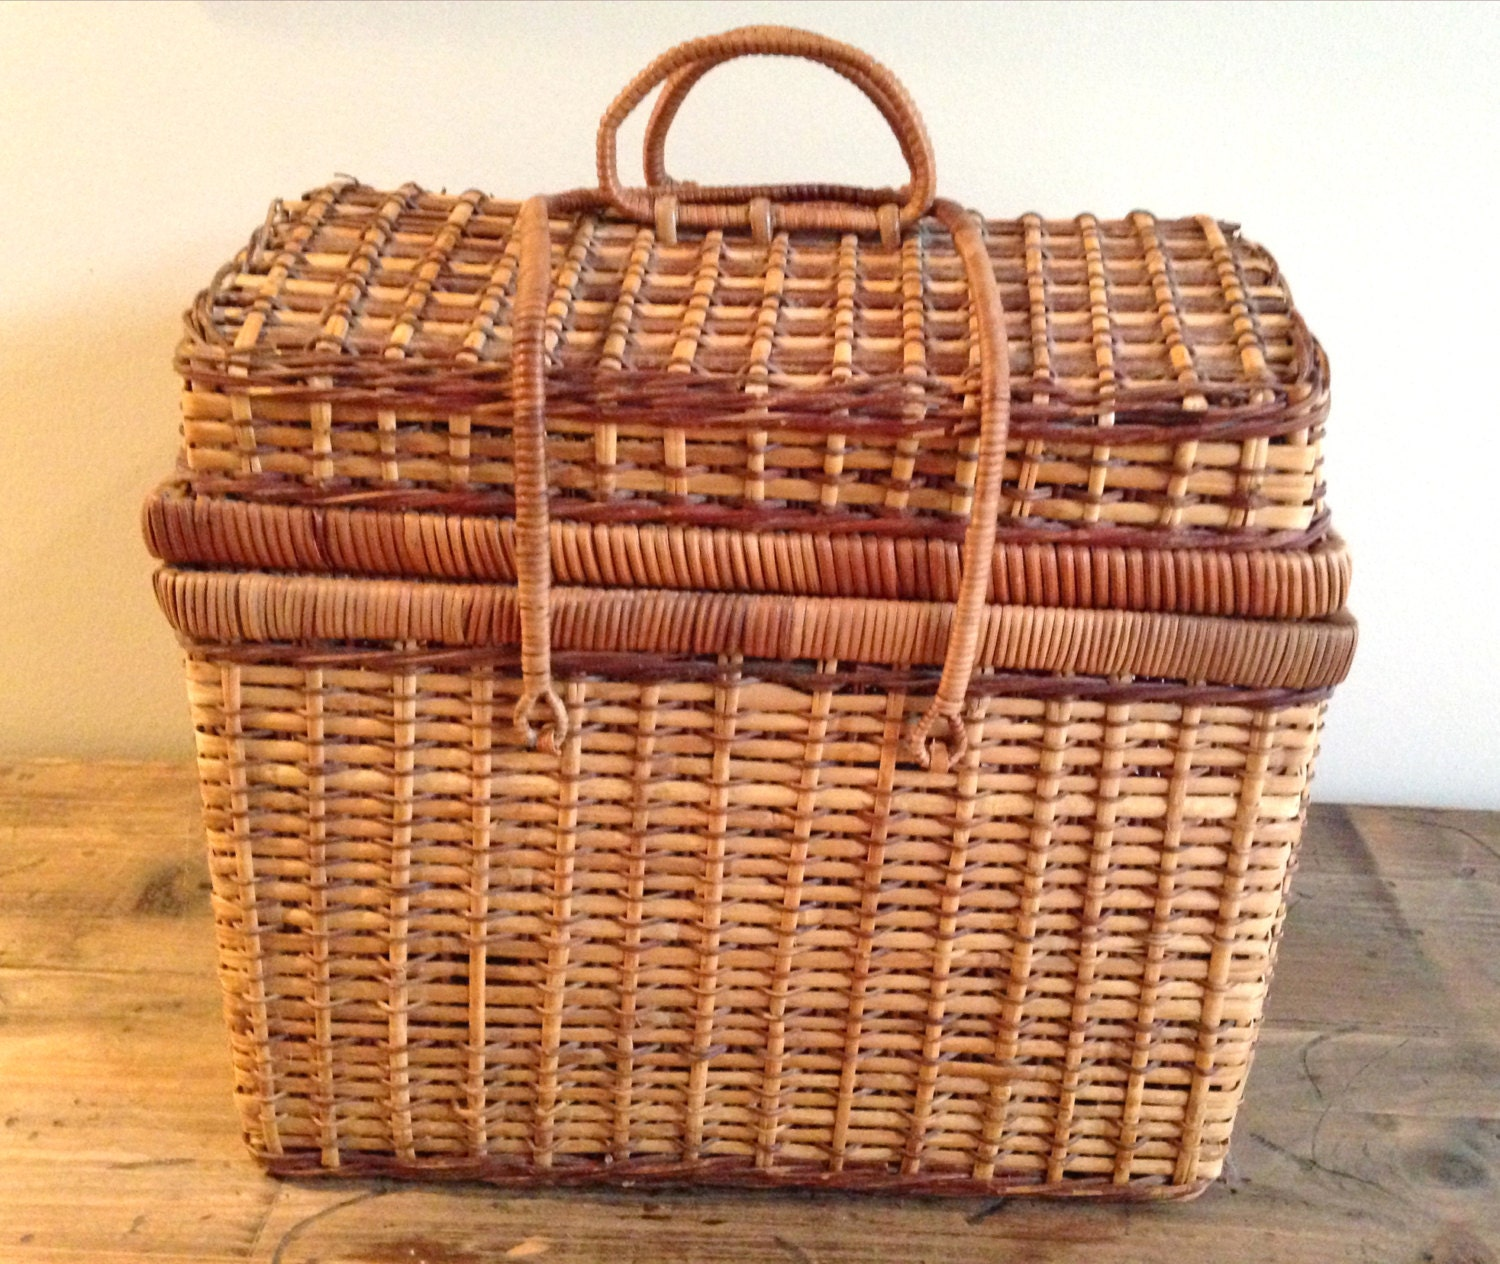 Wicker Baskets With Handles And Lid : Vintage wicker picnic sewing basket with lid and handles m